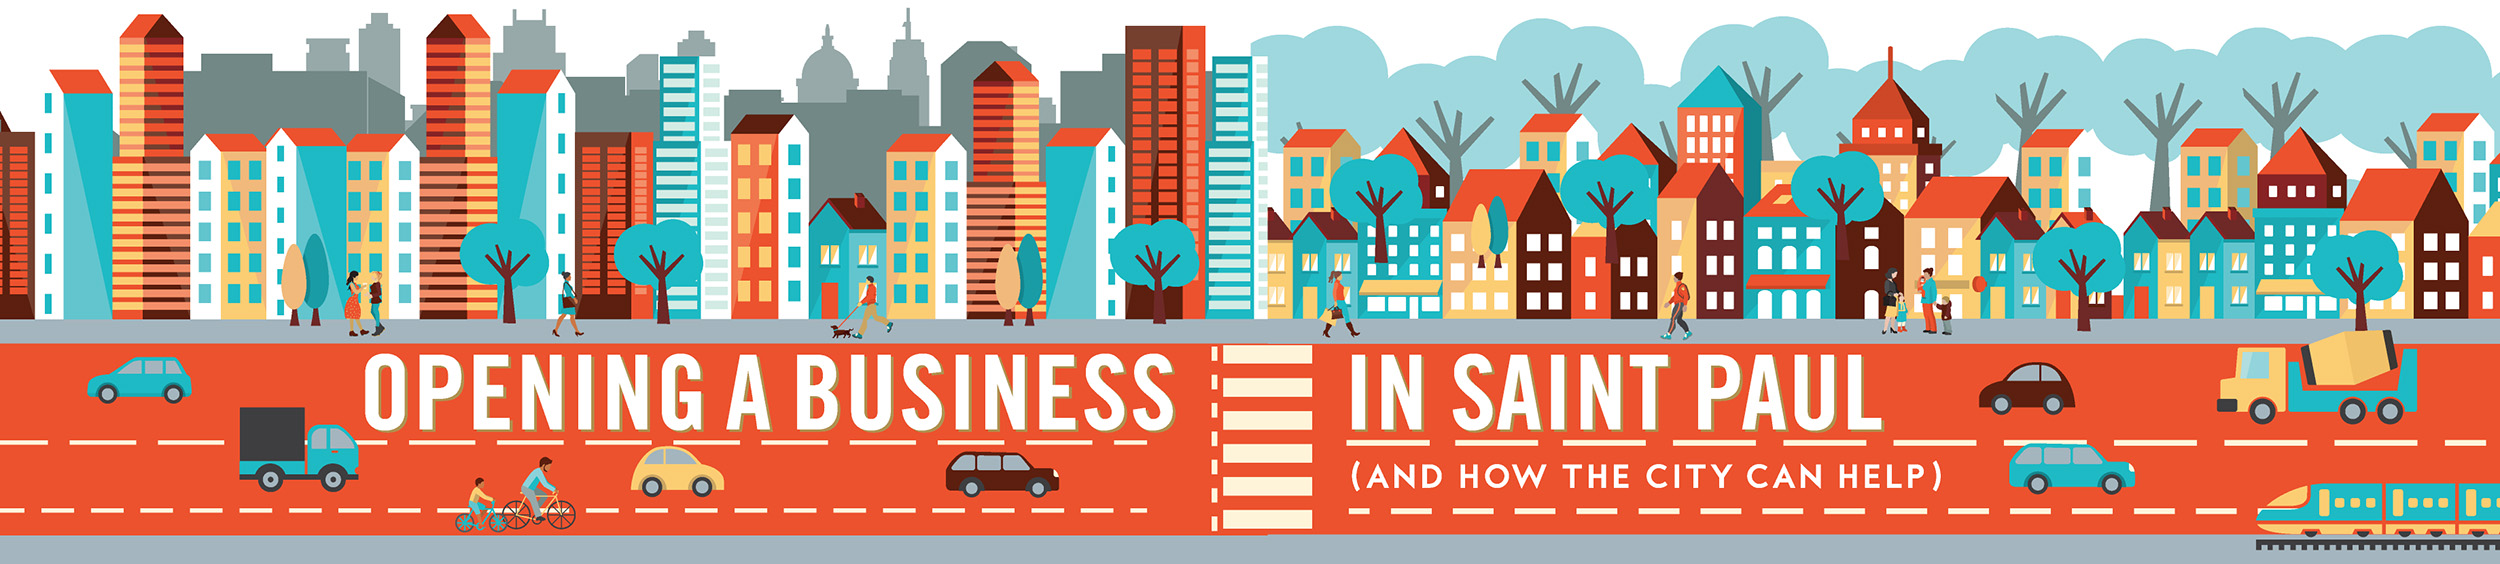 Opening a business in Saint Paul and how the city can help